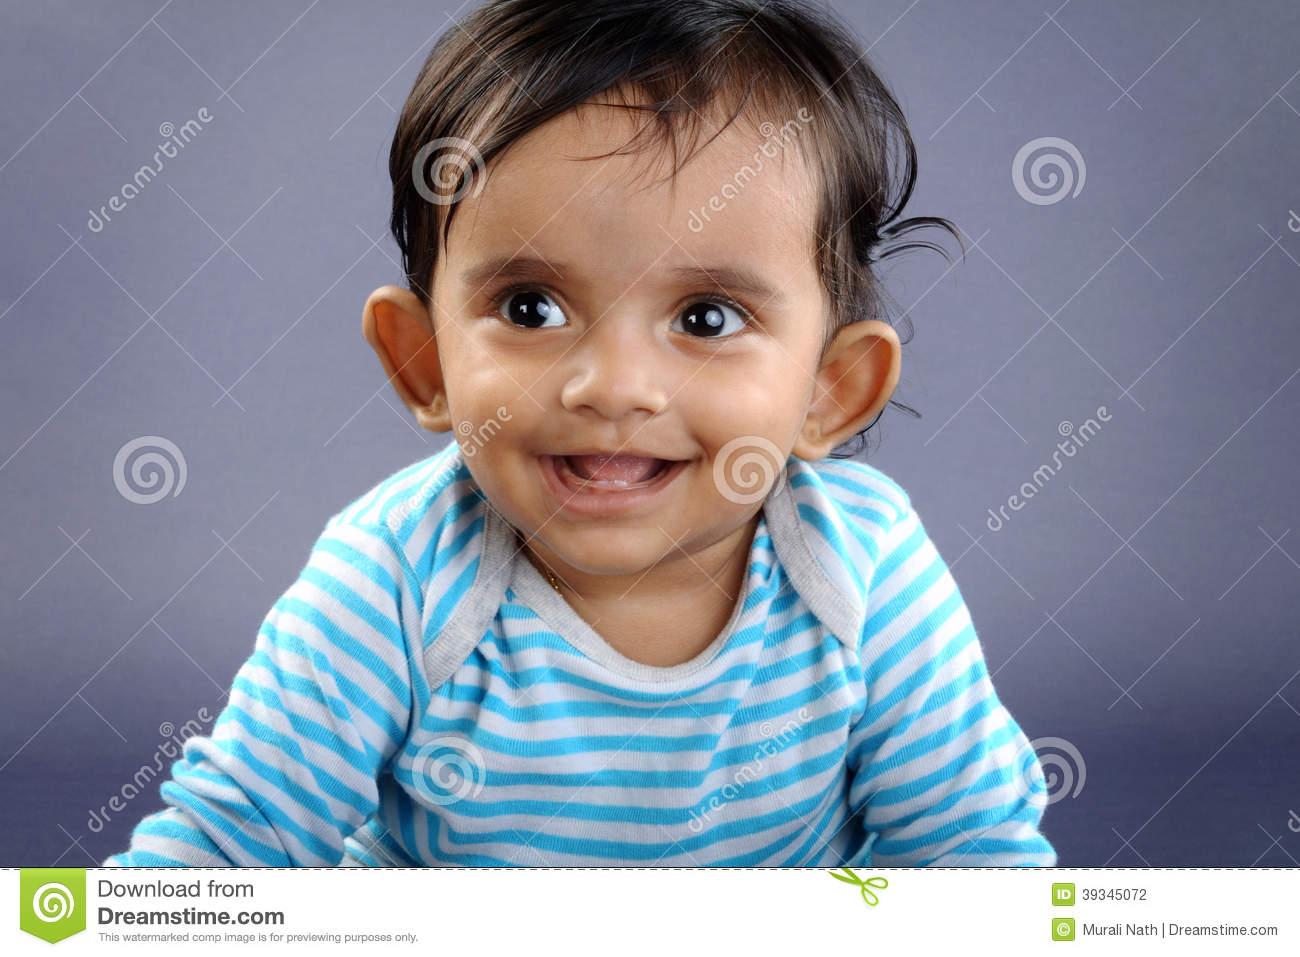 indian cute baby stock photo. image of hair, parenting - 39345072